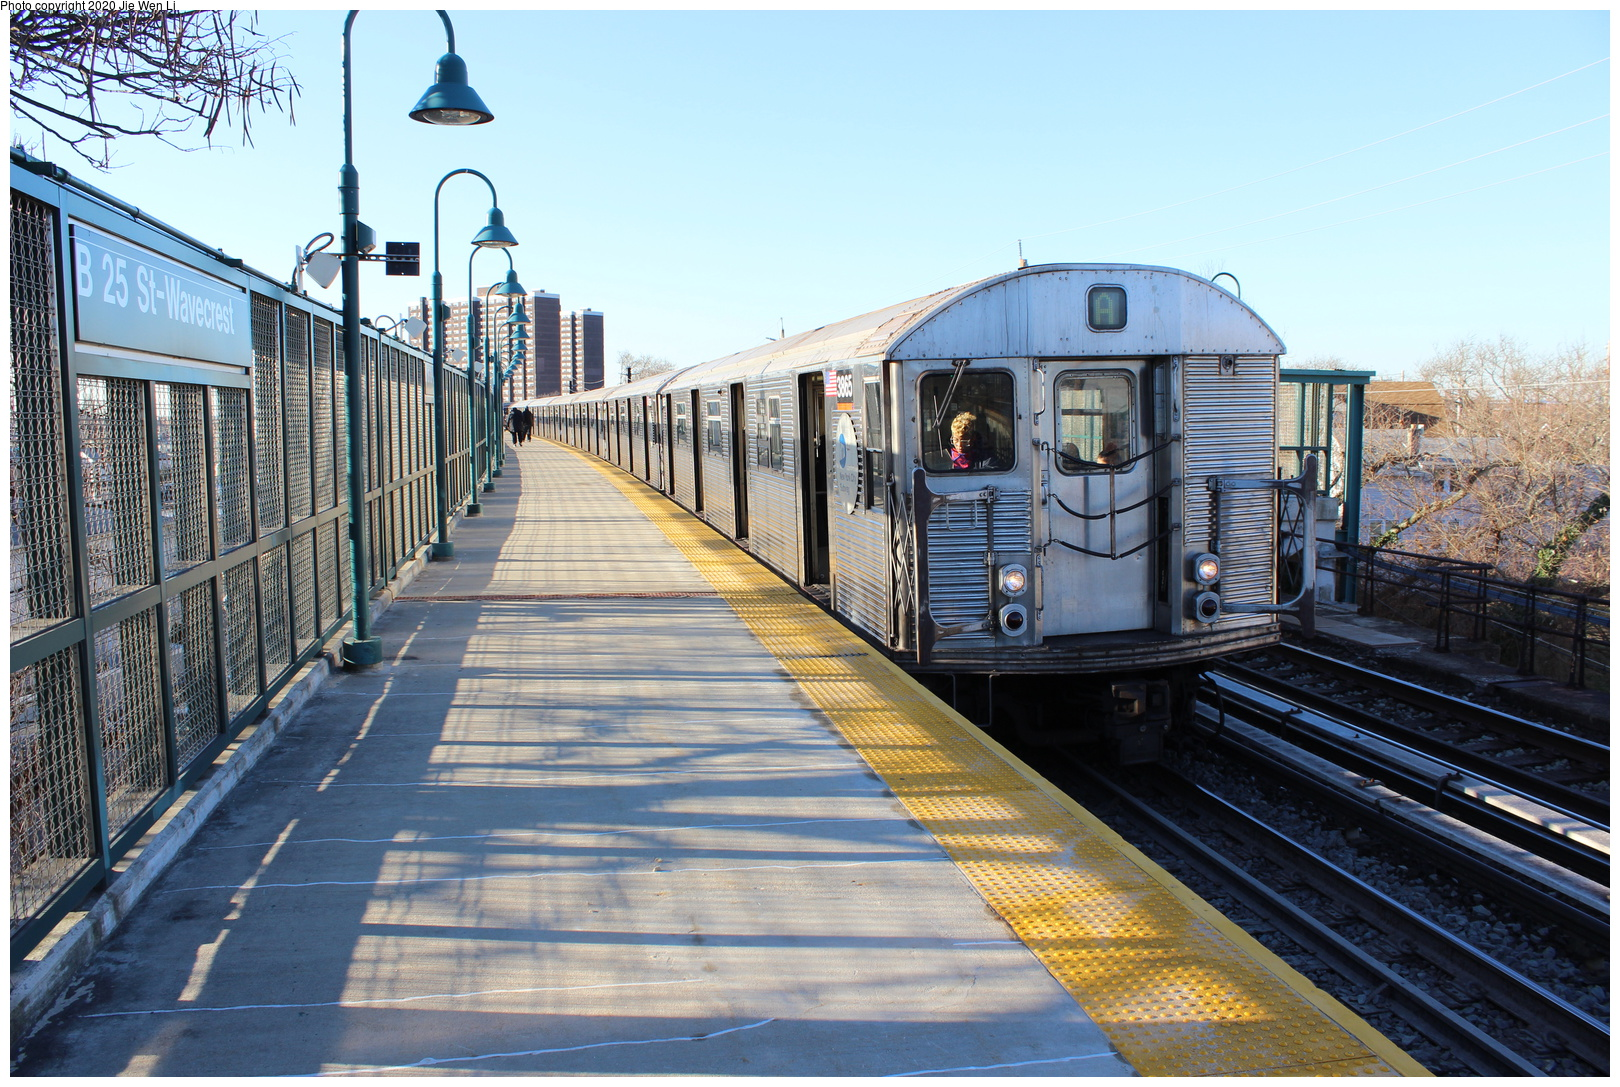 (226k, 1044x961)<br><b>Country:</b> United States<br><b>City:</b> New York<br><b>System:</b> New York City Transit<br><b>Line:</b> IND Fulton Street Line<br><b>Location:</b> 111th Street/Greenwood Avenue <br><b>Car:</b> BMT C  <br><b>Photo by:</b> Joel Shanus<br><b>Viewed (this week/total):</b> 3 / 1312